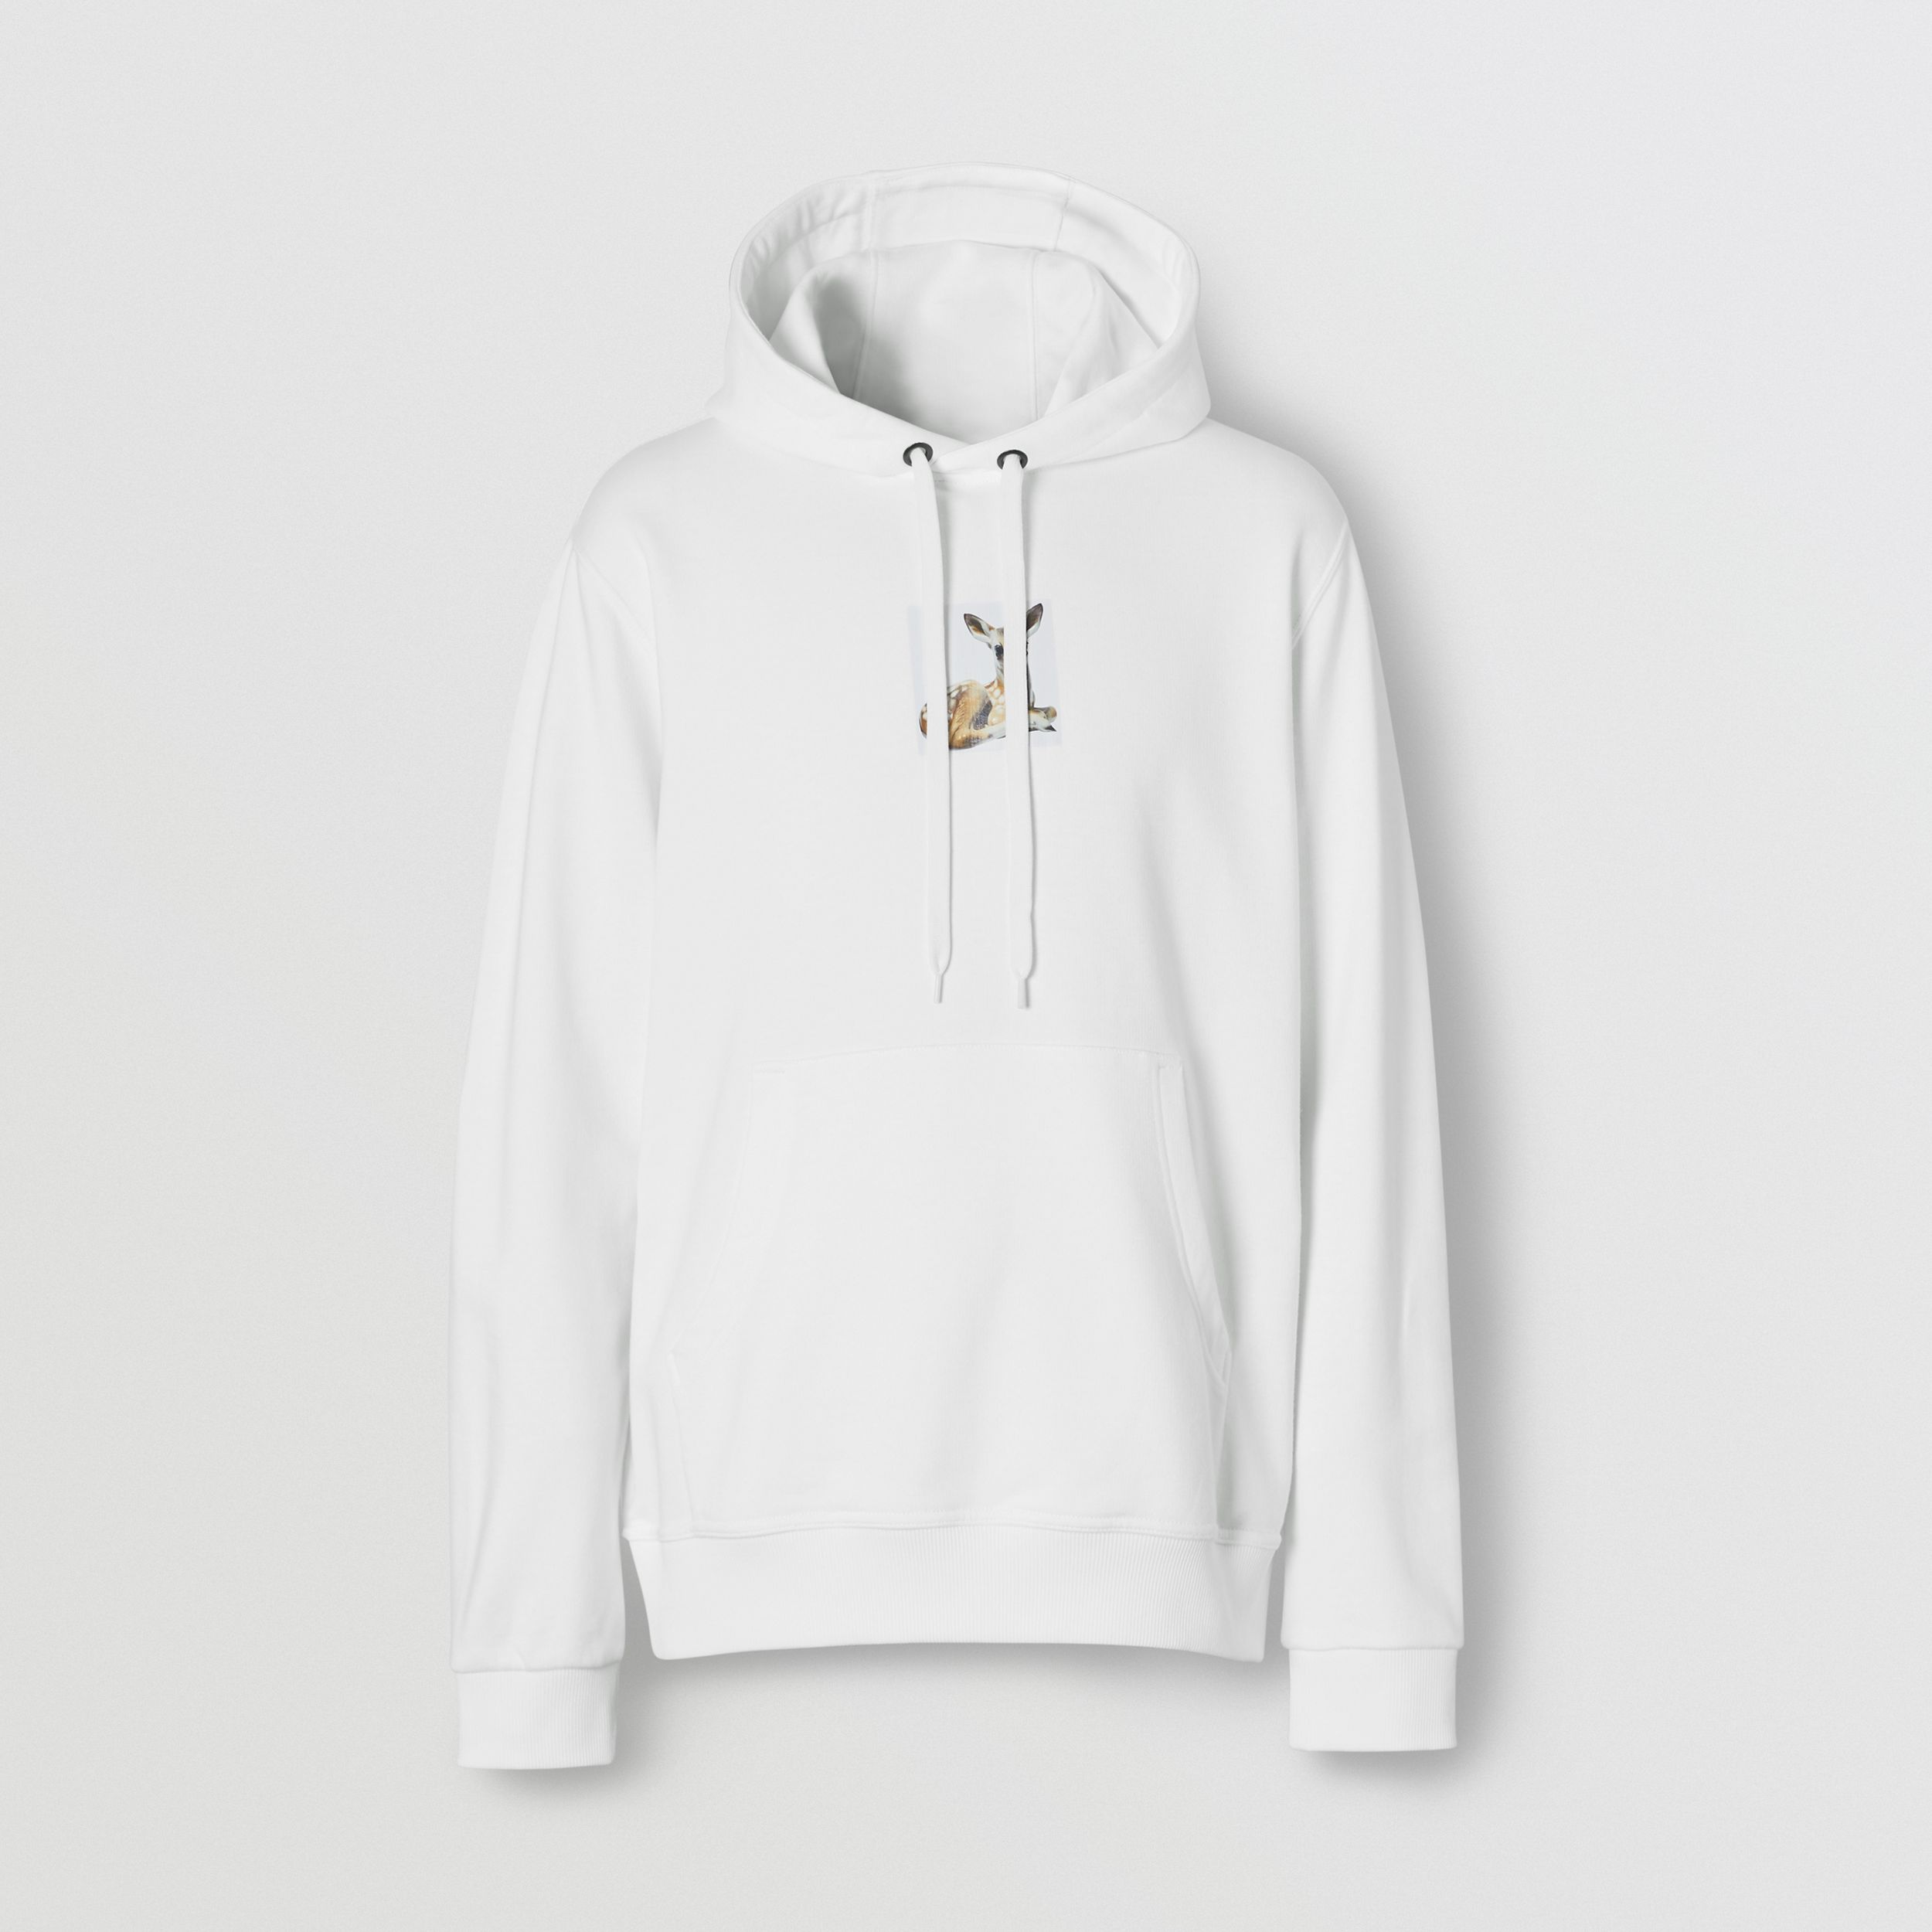 Deer Print Cotton Hoodie in White - Men | Burberry - 4